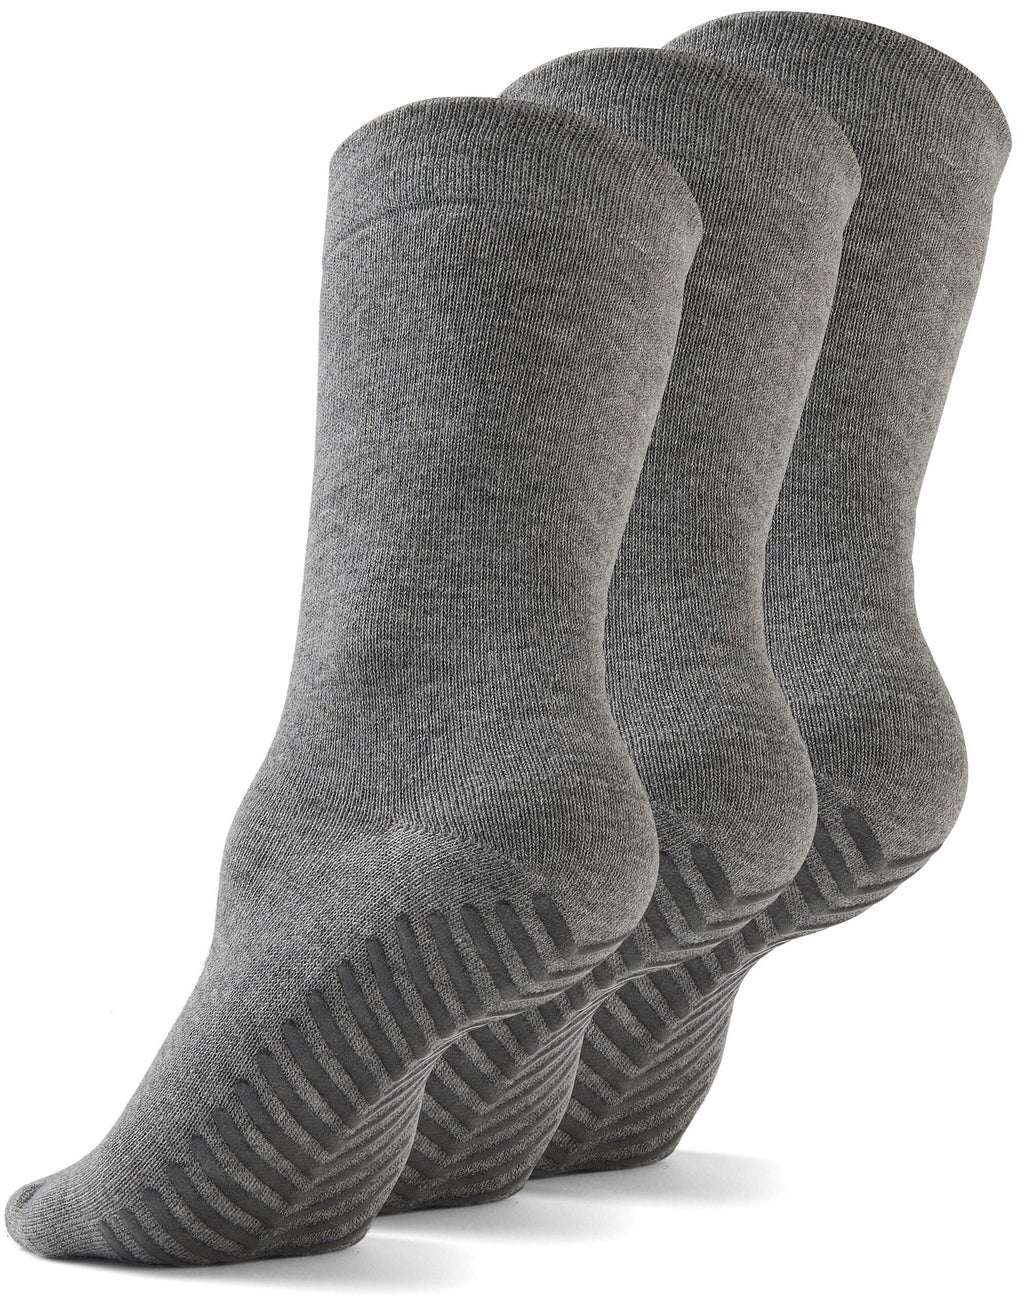 Gripjoy Men's Crew Grip Socks Light Grey 3-Pack - Gripjoy Socks